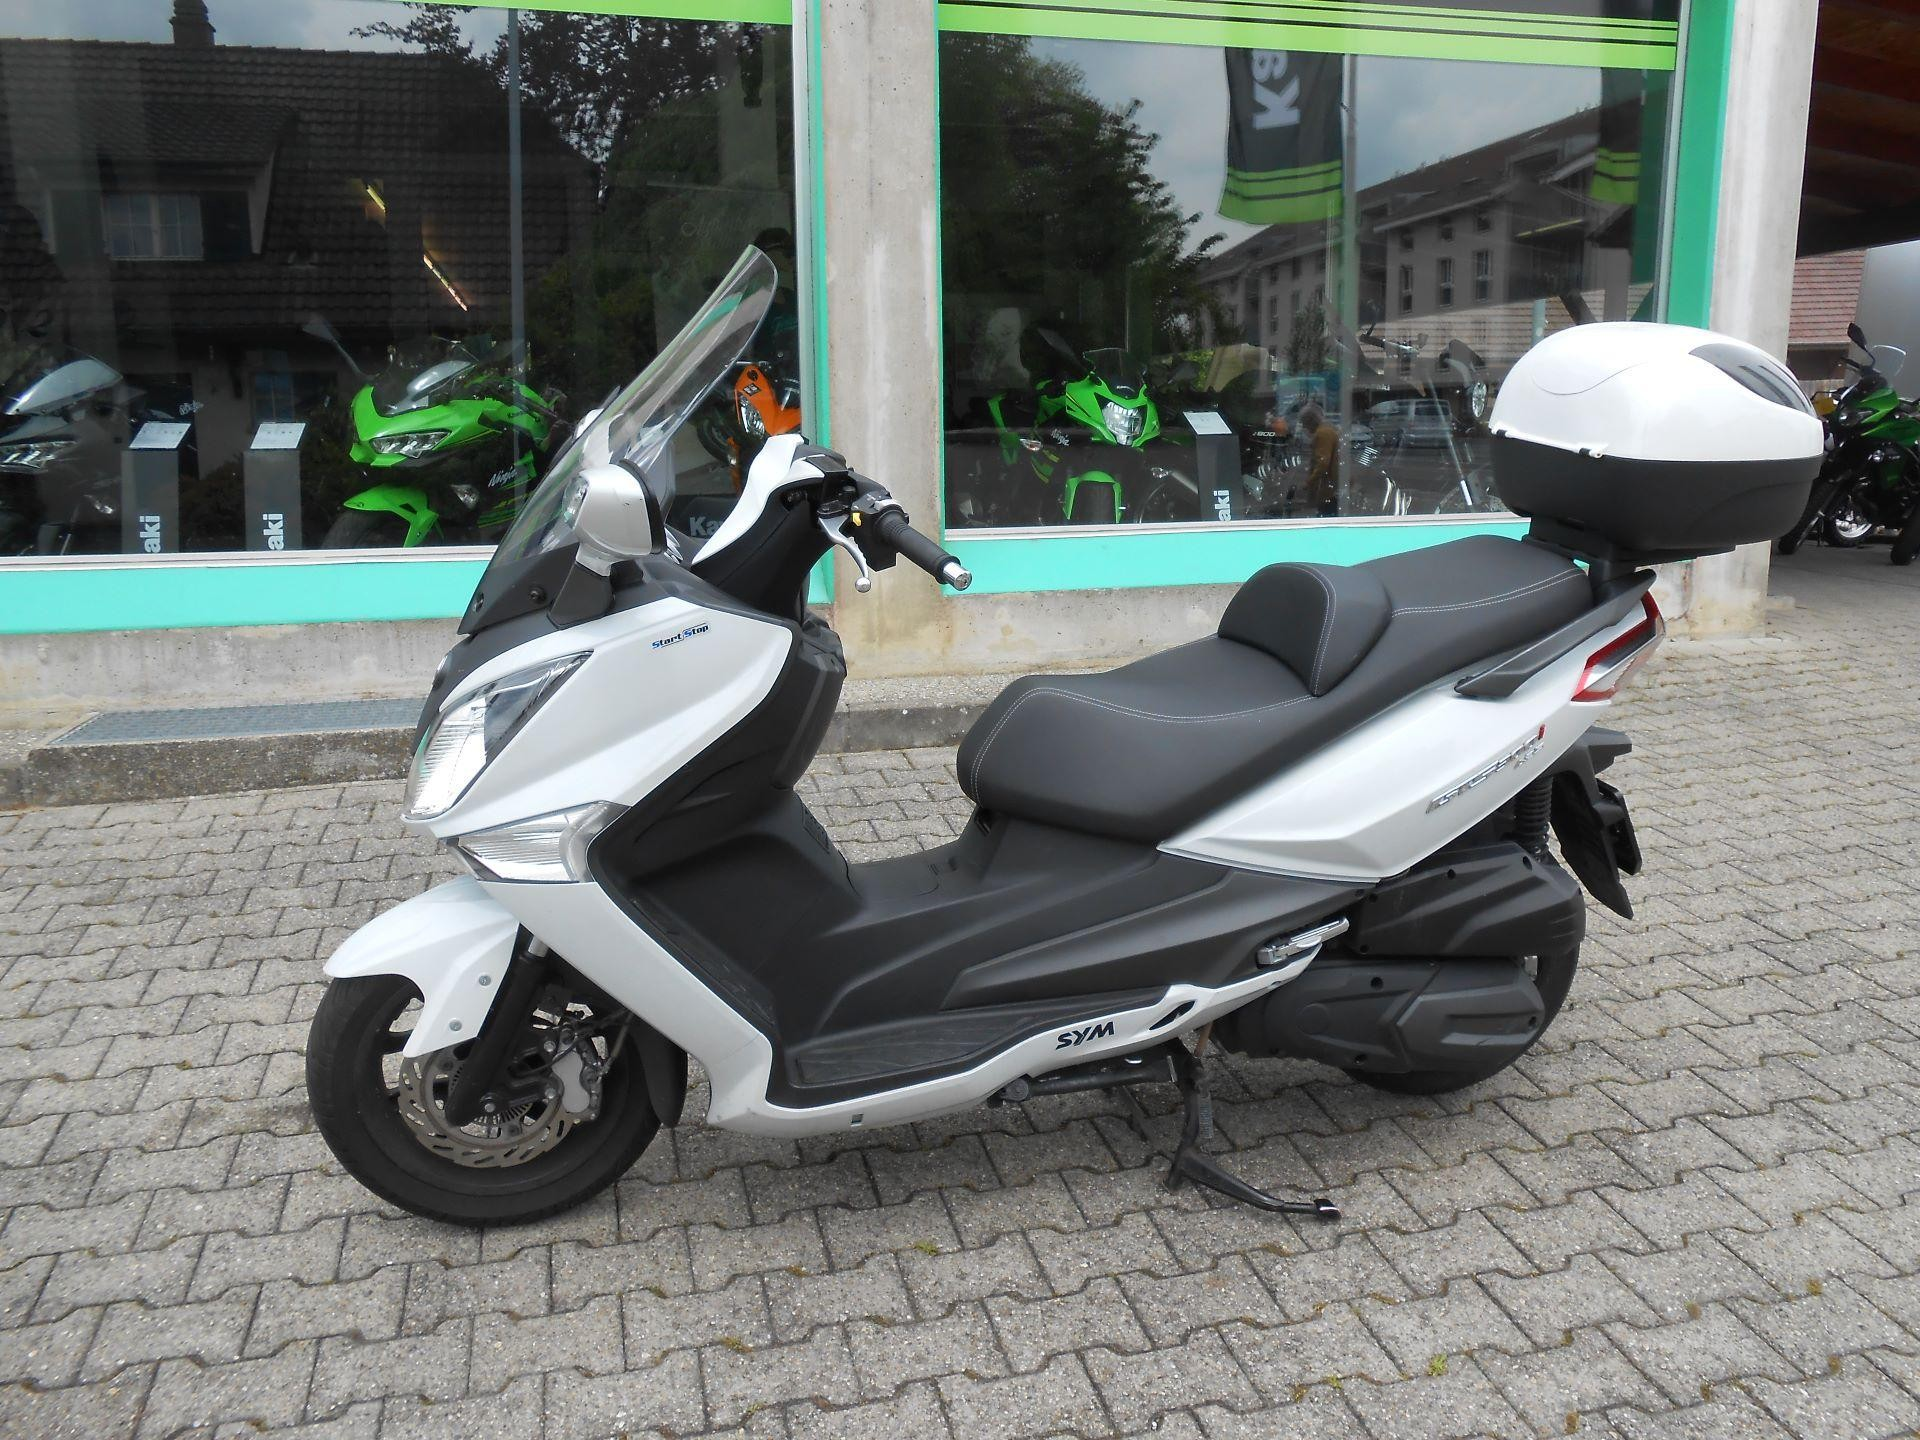 Buy motorbike Pre-owned SYM GTS 300i ABS Moto-Center Graf